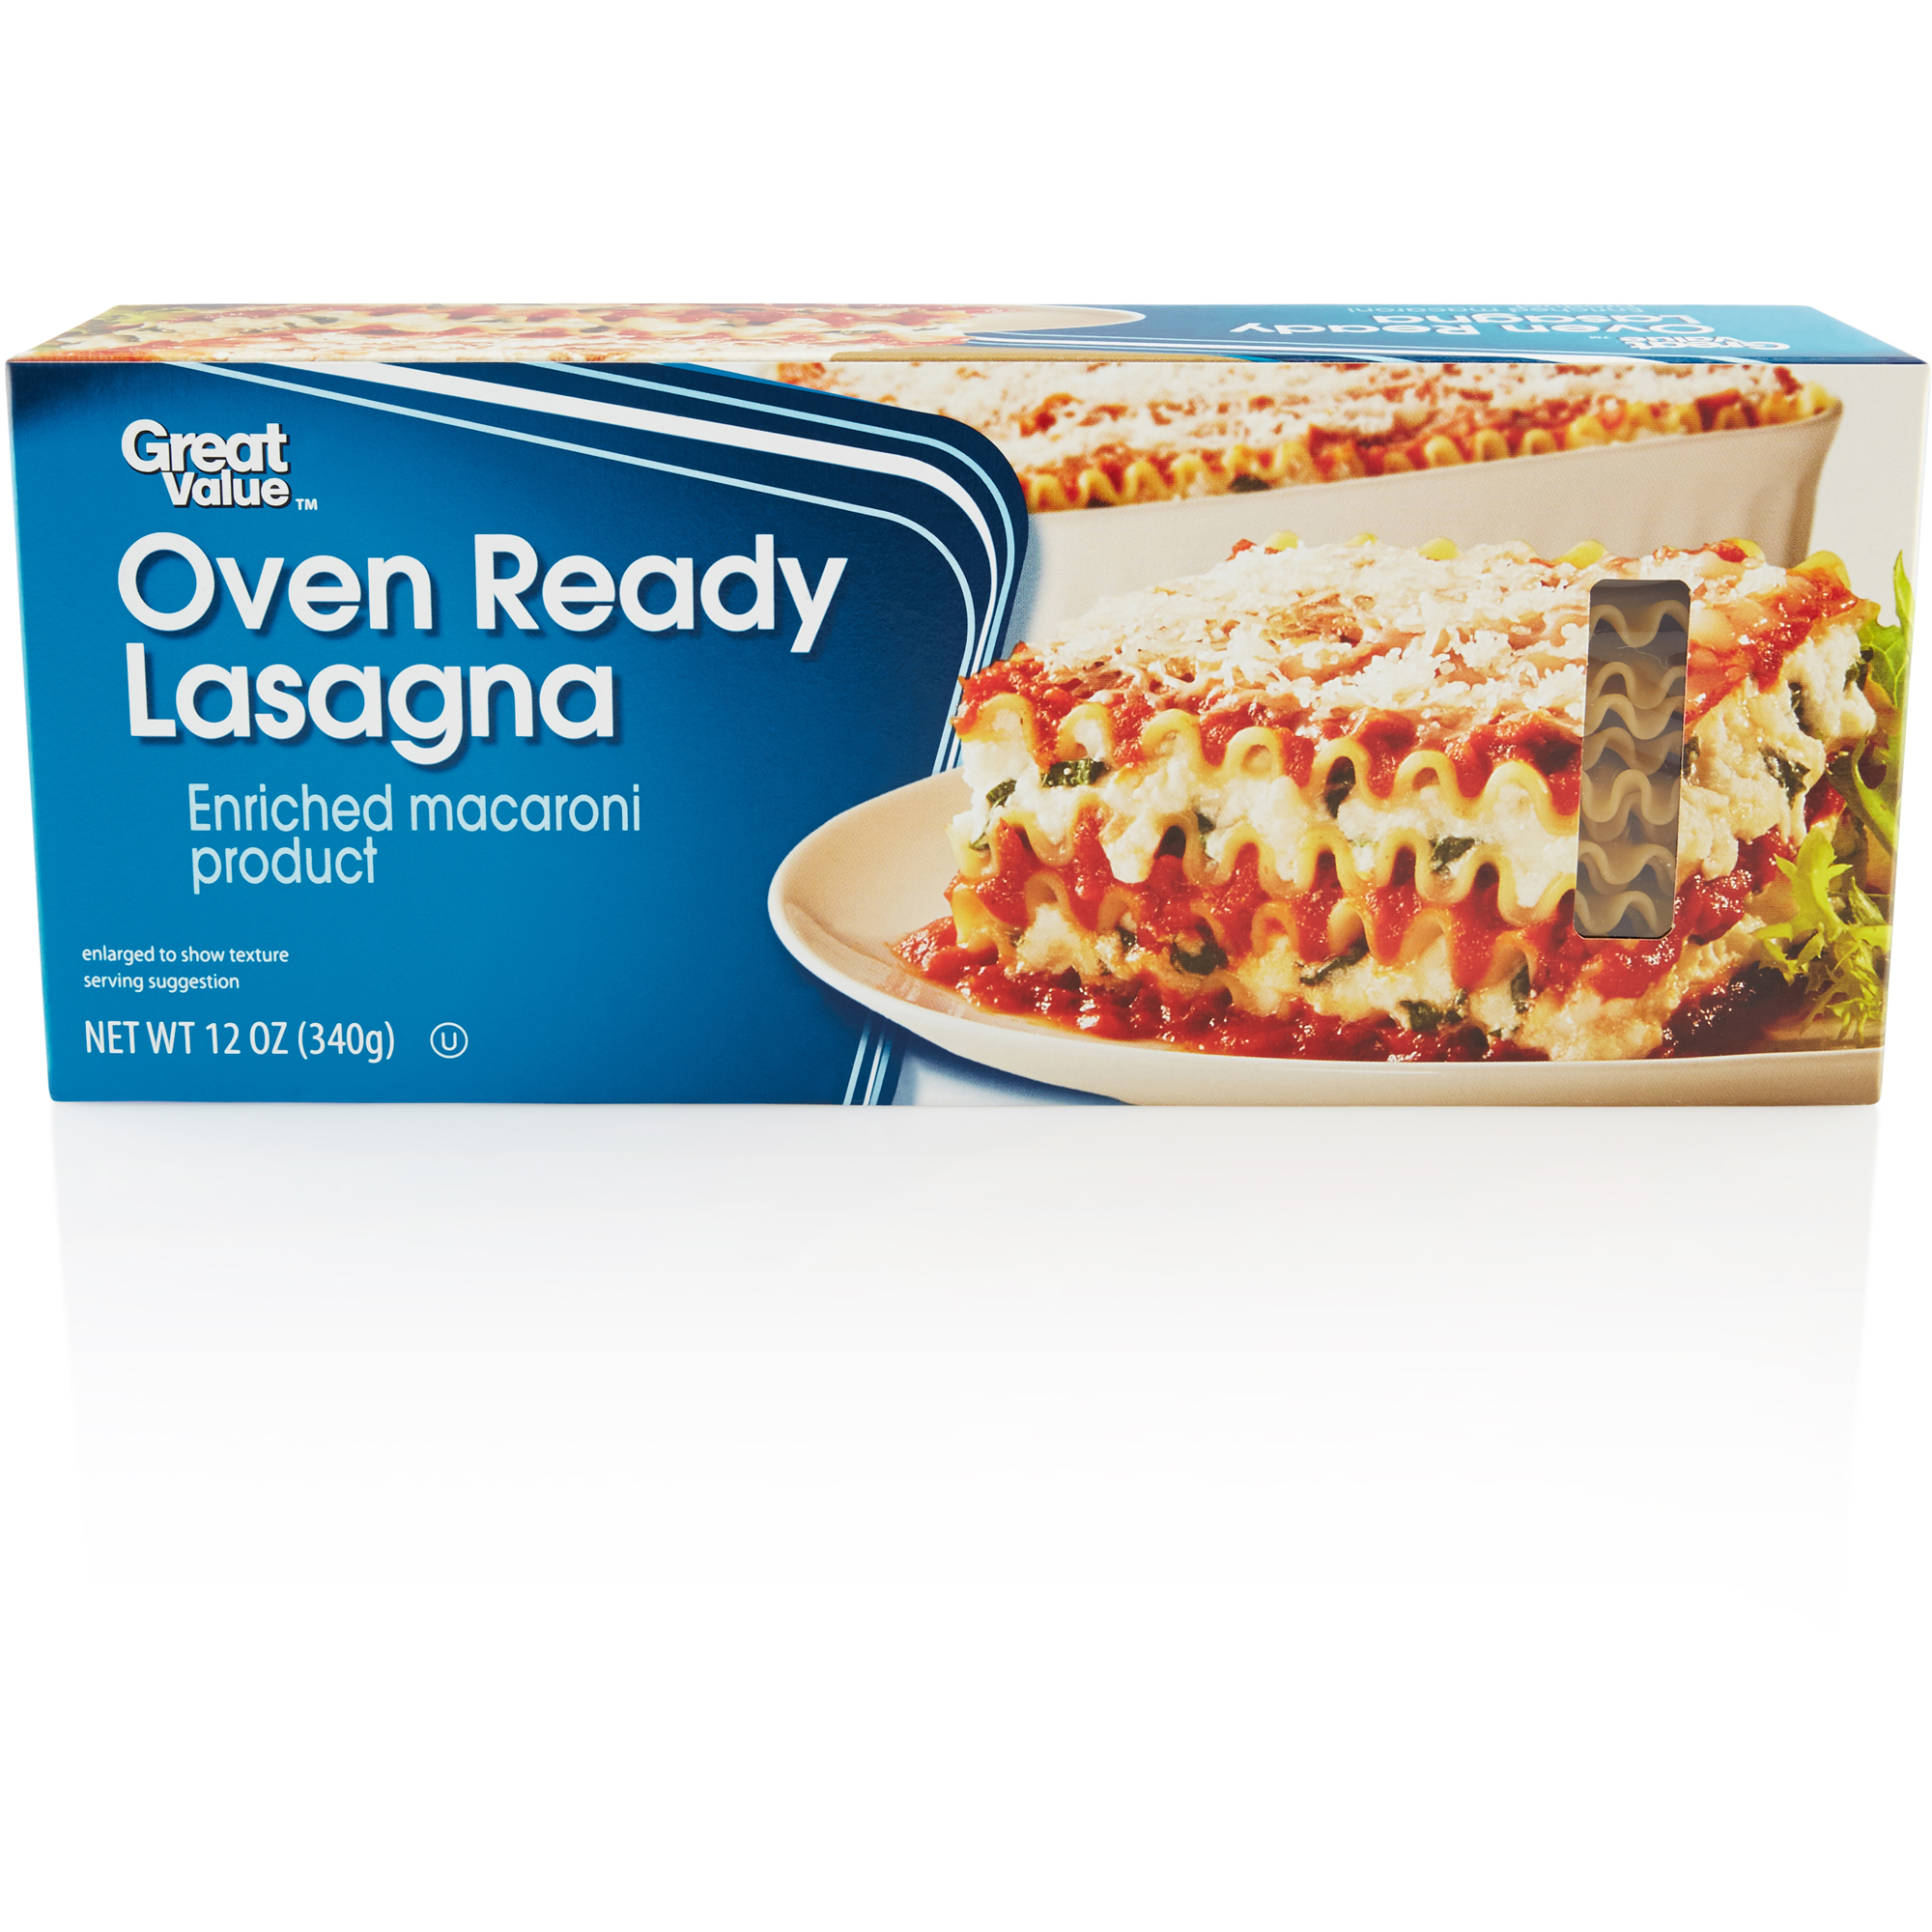 Great Value Oven Ready Lasagna Pasta Enriched Macaroni Product, 12 Oz